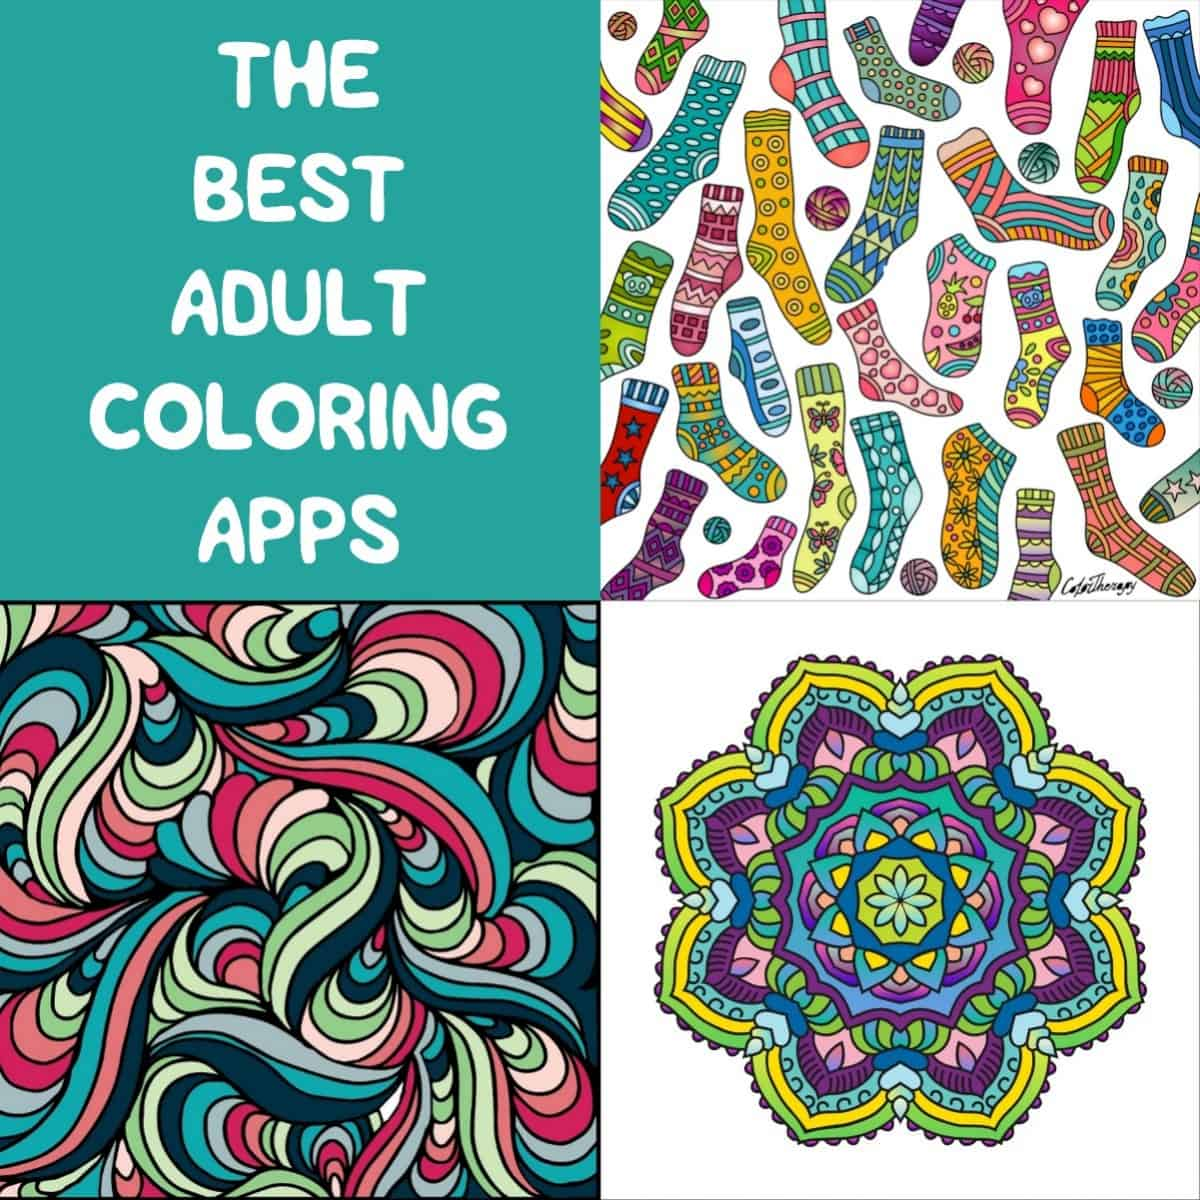 The best adult coloring apps Coloring book for adults app